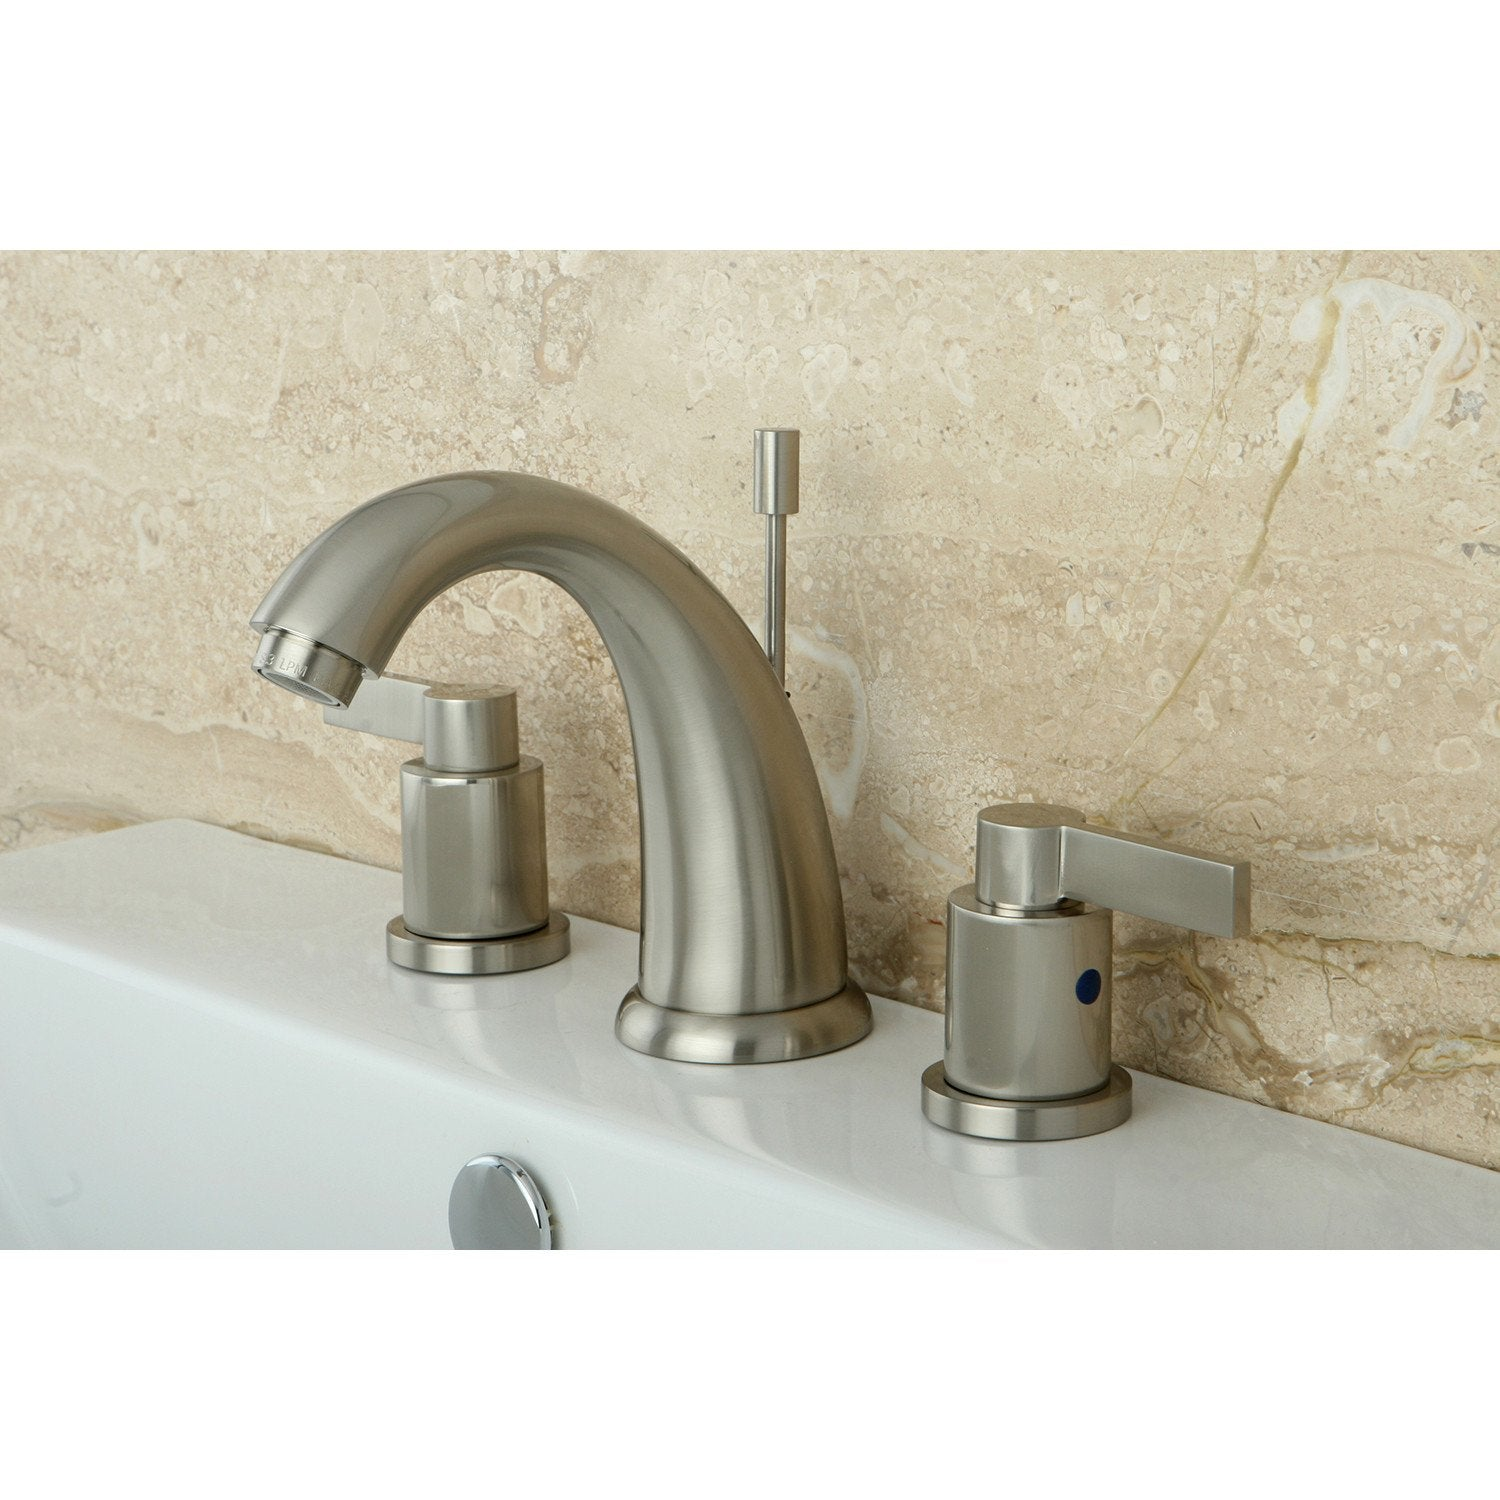 Satin Nickel NuvoFusion Widespread bathroom Faucet w/ Drain KB8988NDL